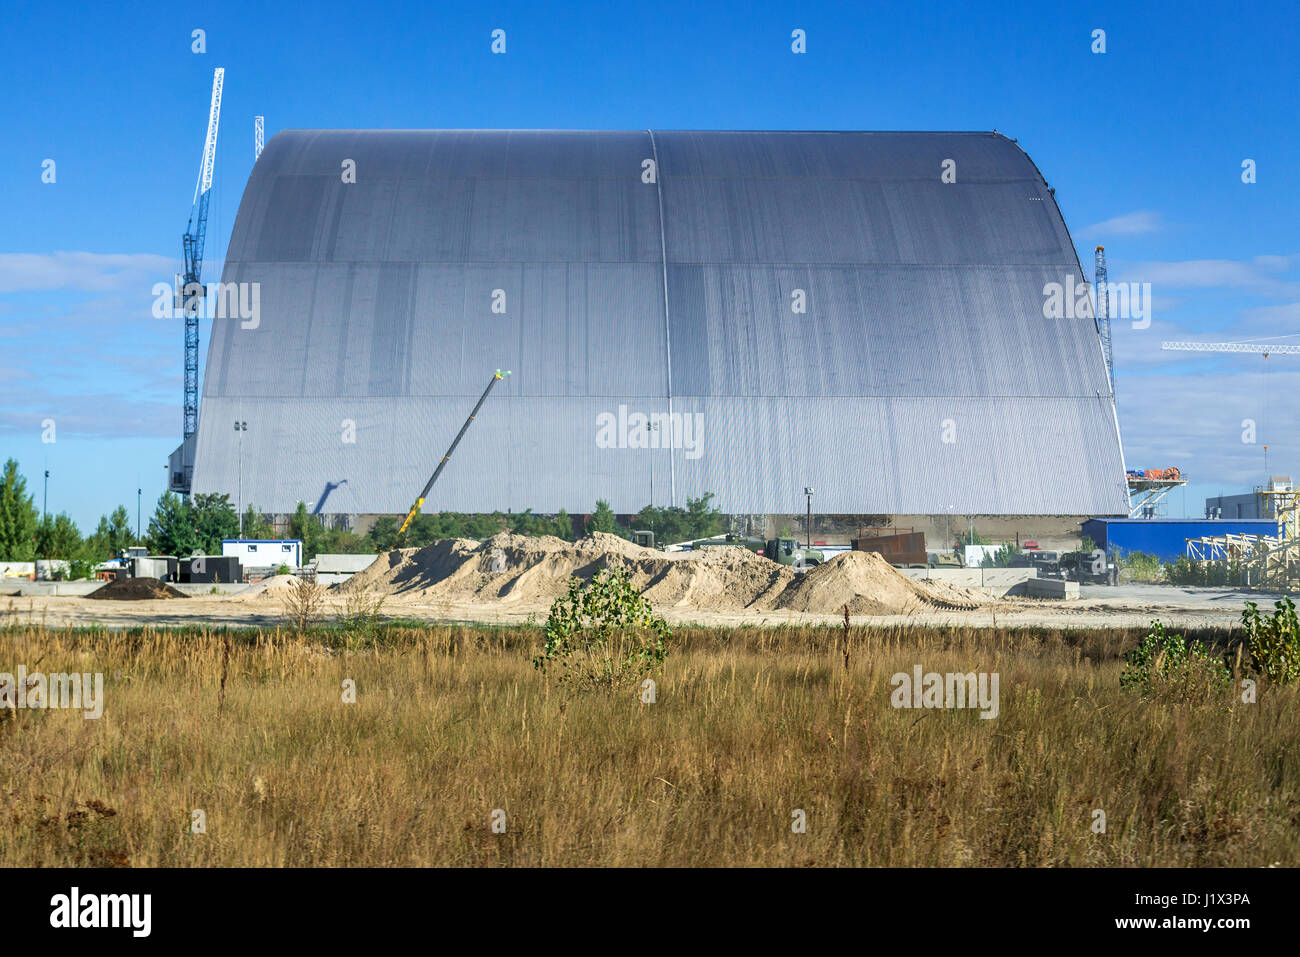 Chernobyl New Safe Confinement for No 4 unit of Chernobyl Nuclear Power Plant in Zone of Alienation, Ukraine - Stock Image